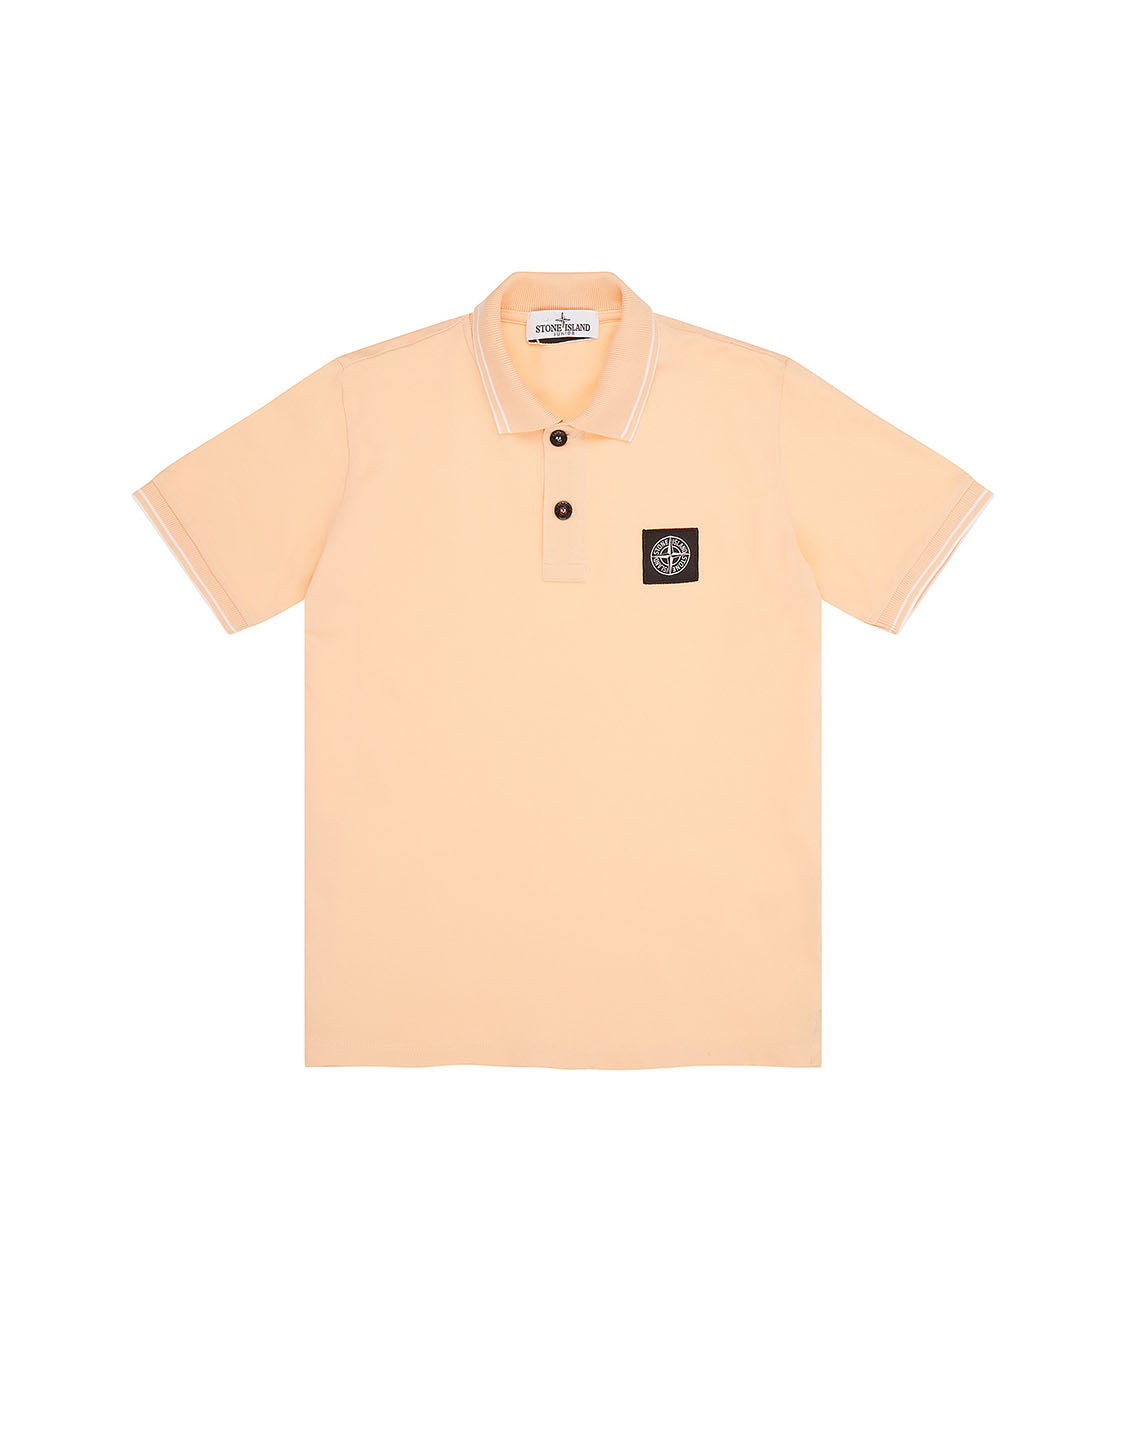 21348 Polo Shirt in Salmon